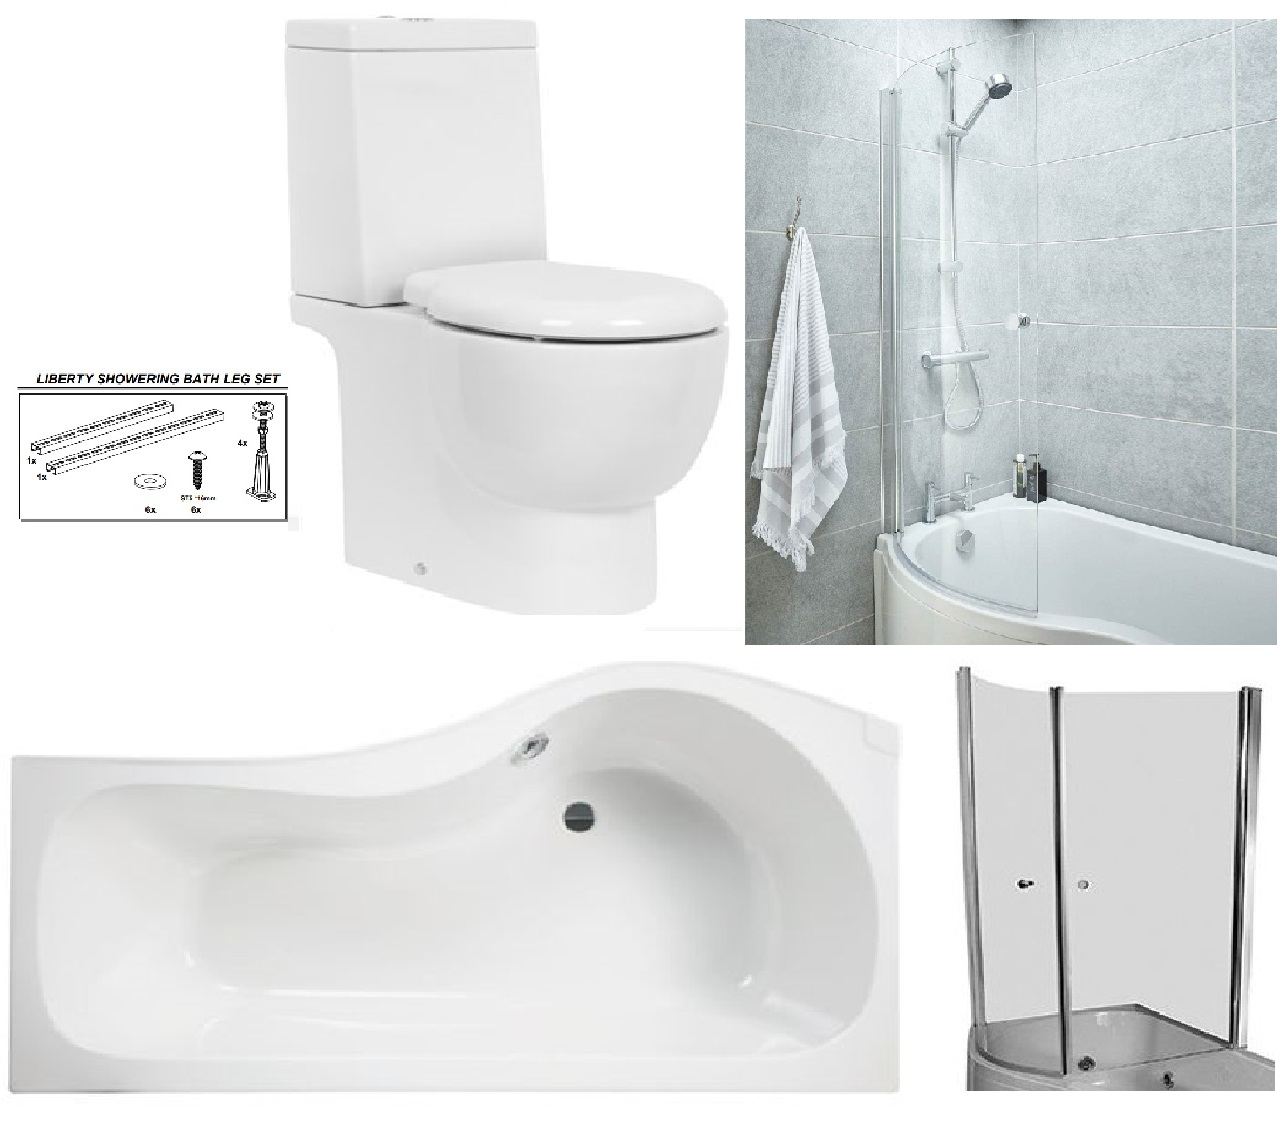 Bathstore 'Liberty' LEFT HANDED 1500mm re-enforced 'P' shower bath with curved pivot front bath